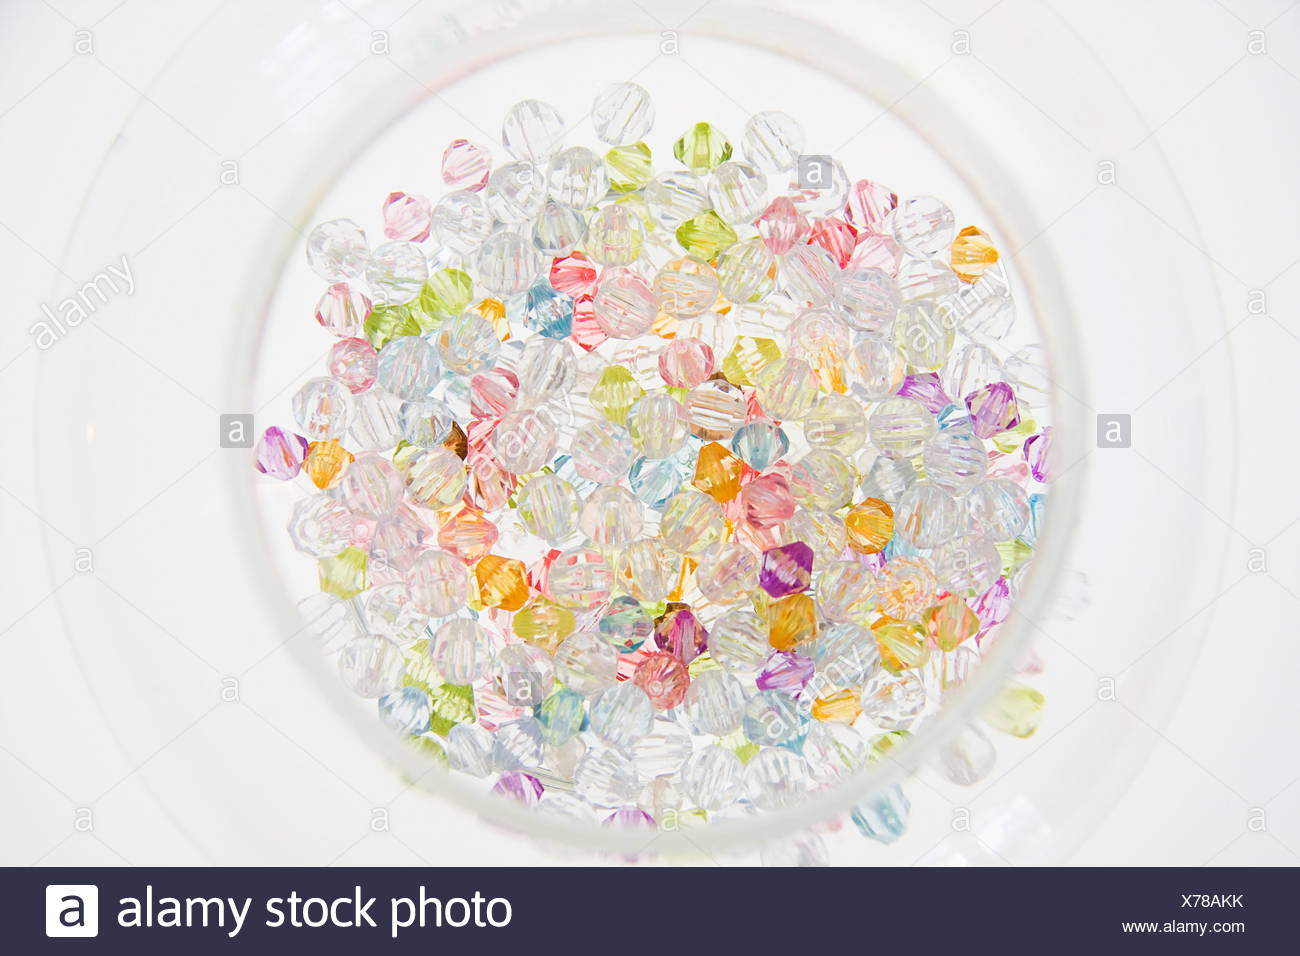 A selection of colored beads in a jar - Stock Image